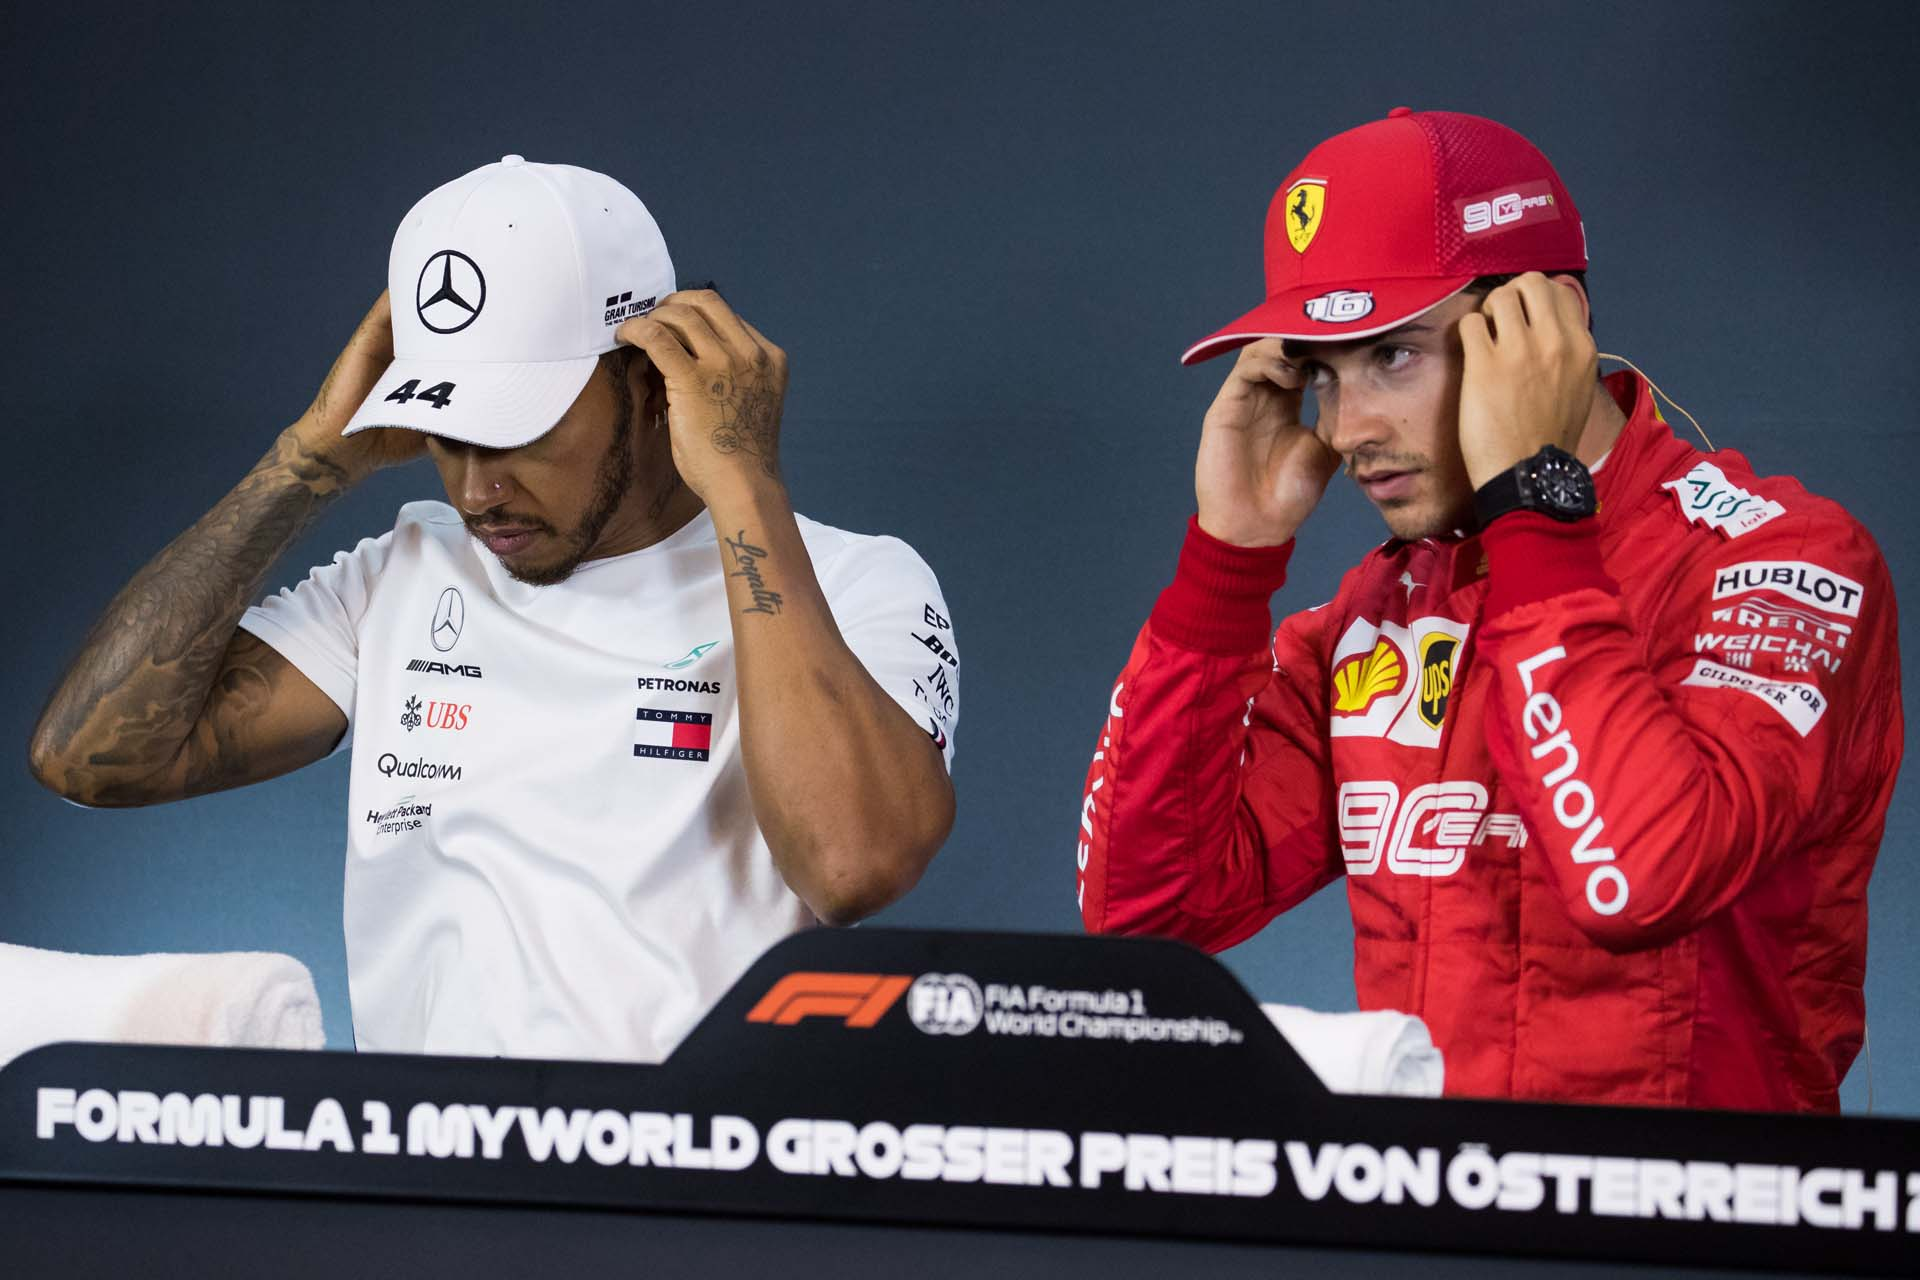 SPIELBERG,AUSTRIA,29.JUN.19 - MOTORSPORTS, FORMULA 1 - Grand Prix of Austria, Red Bull Ring, qualification. Image shows Lewis Hamilton (GBR/ Mercedes) and Charles Leclerc (MON/ Ferrari). Photo: GEPA pictures/ Daniel Goetzhaber - For editorial use only. Image is free of charge.